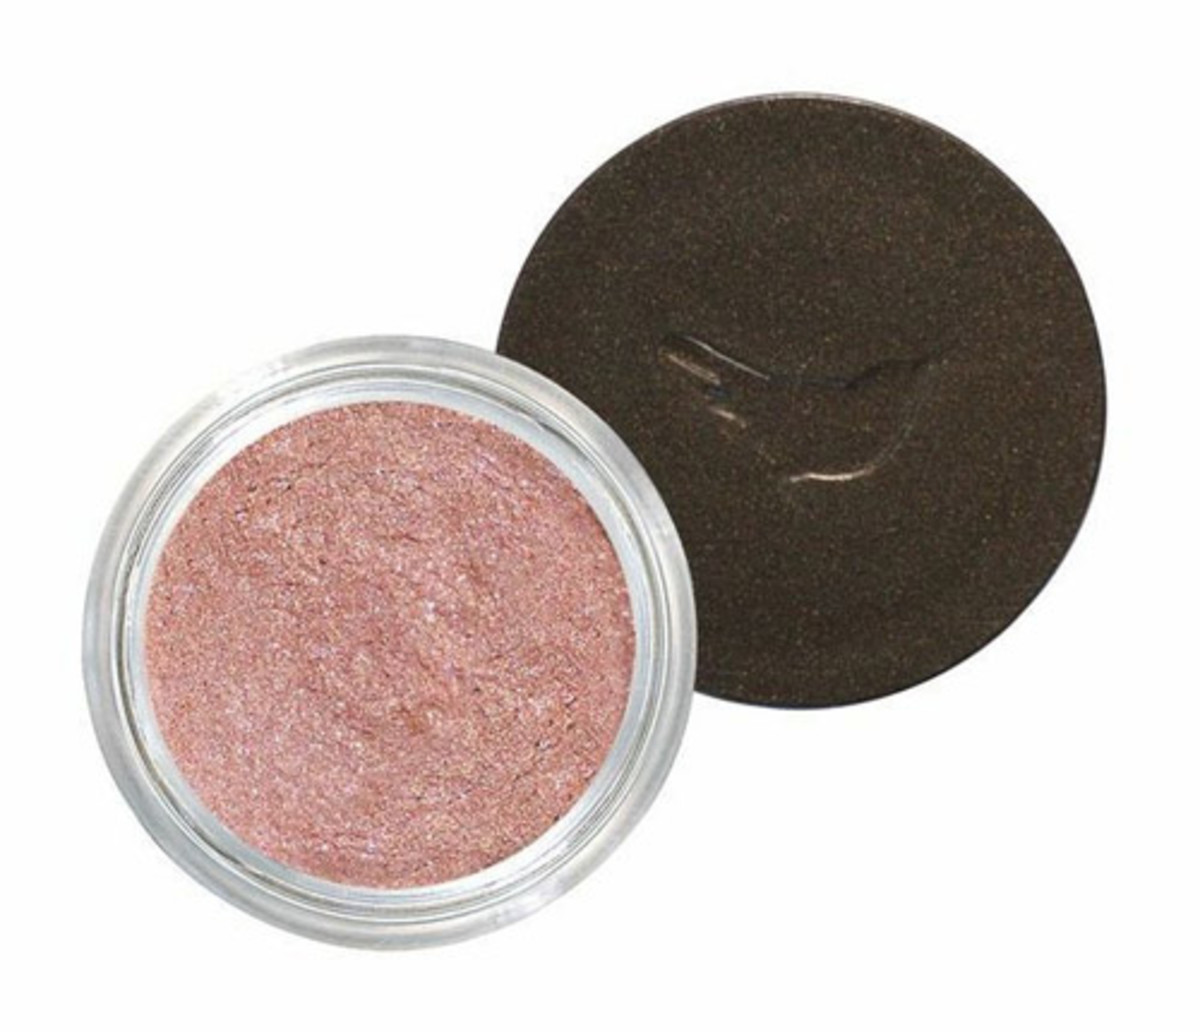 Alima Pure Luminous Shimmer Mineral Eyeshadow in Hellebore